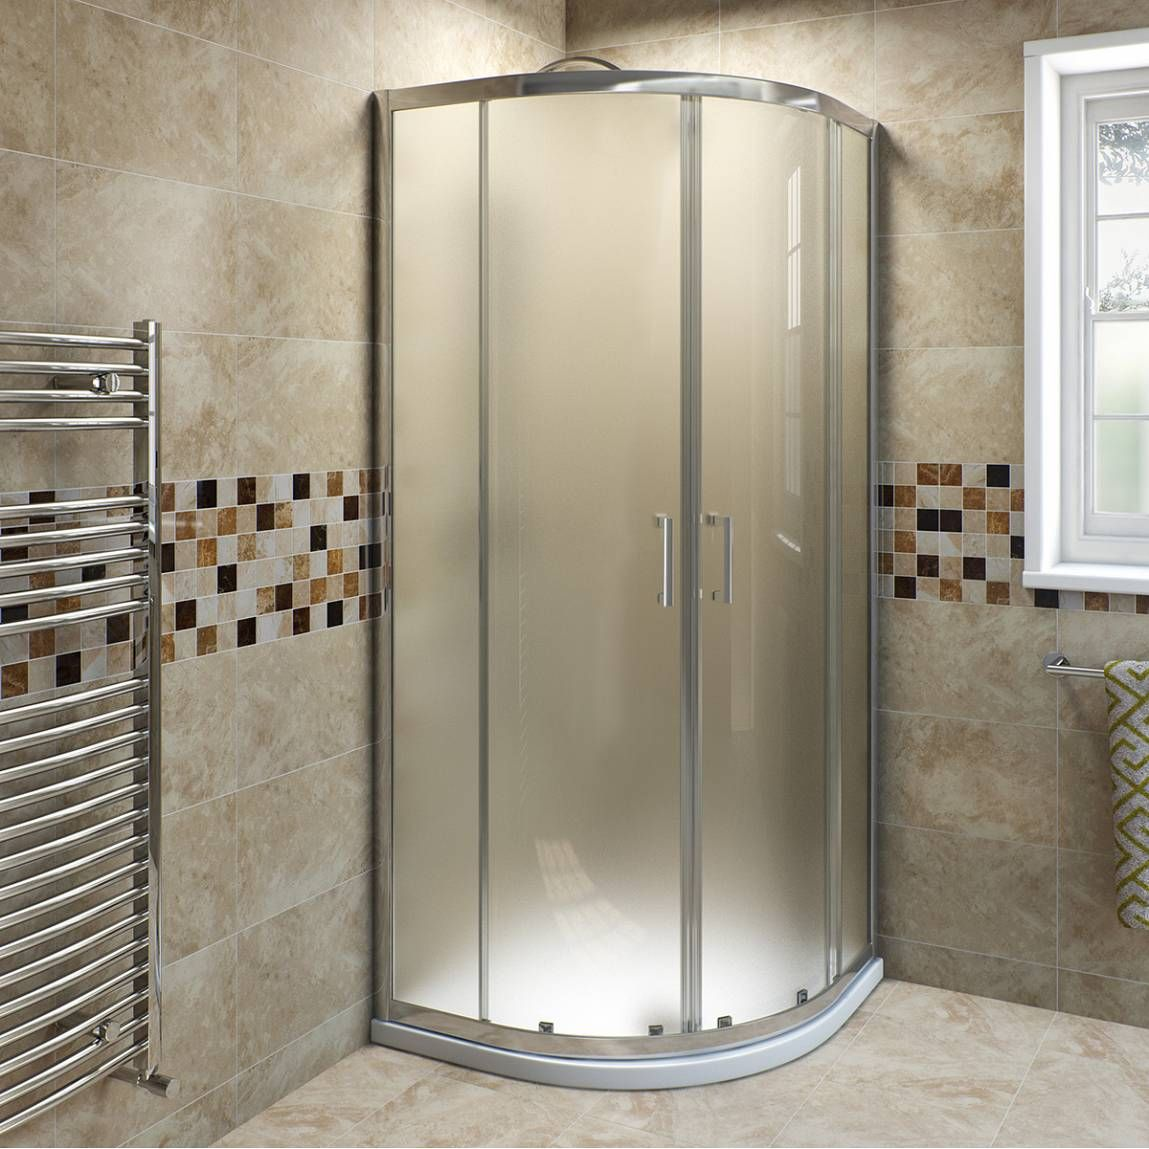 Engaging Frosted Glass Quadrant Shower Enclosure Round Shower